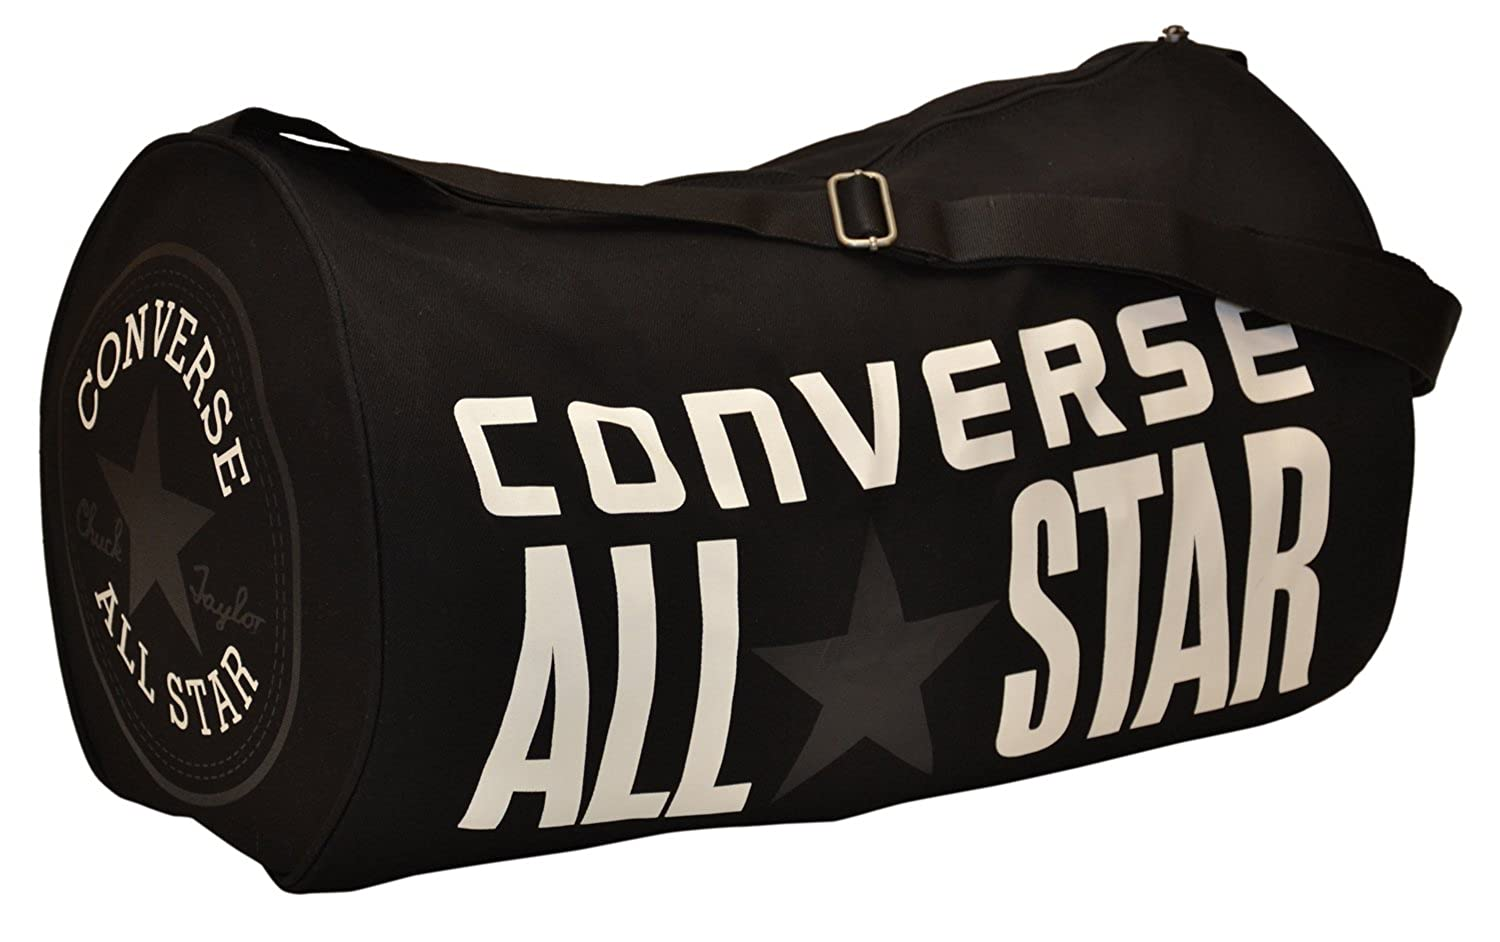 71f8a43d29 Converse All Star Chuck Taylor Duffel Gym Tote Bag-Black/White:  Amazon.co.uk: Clothing